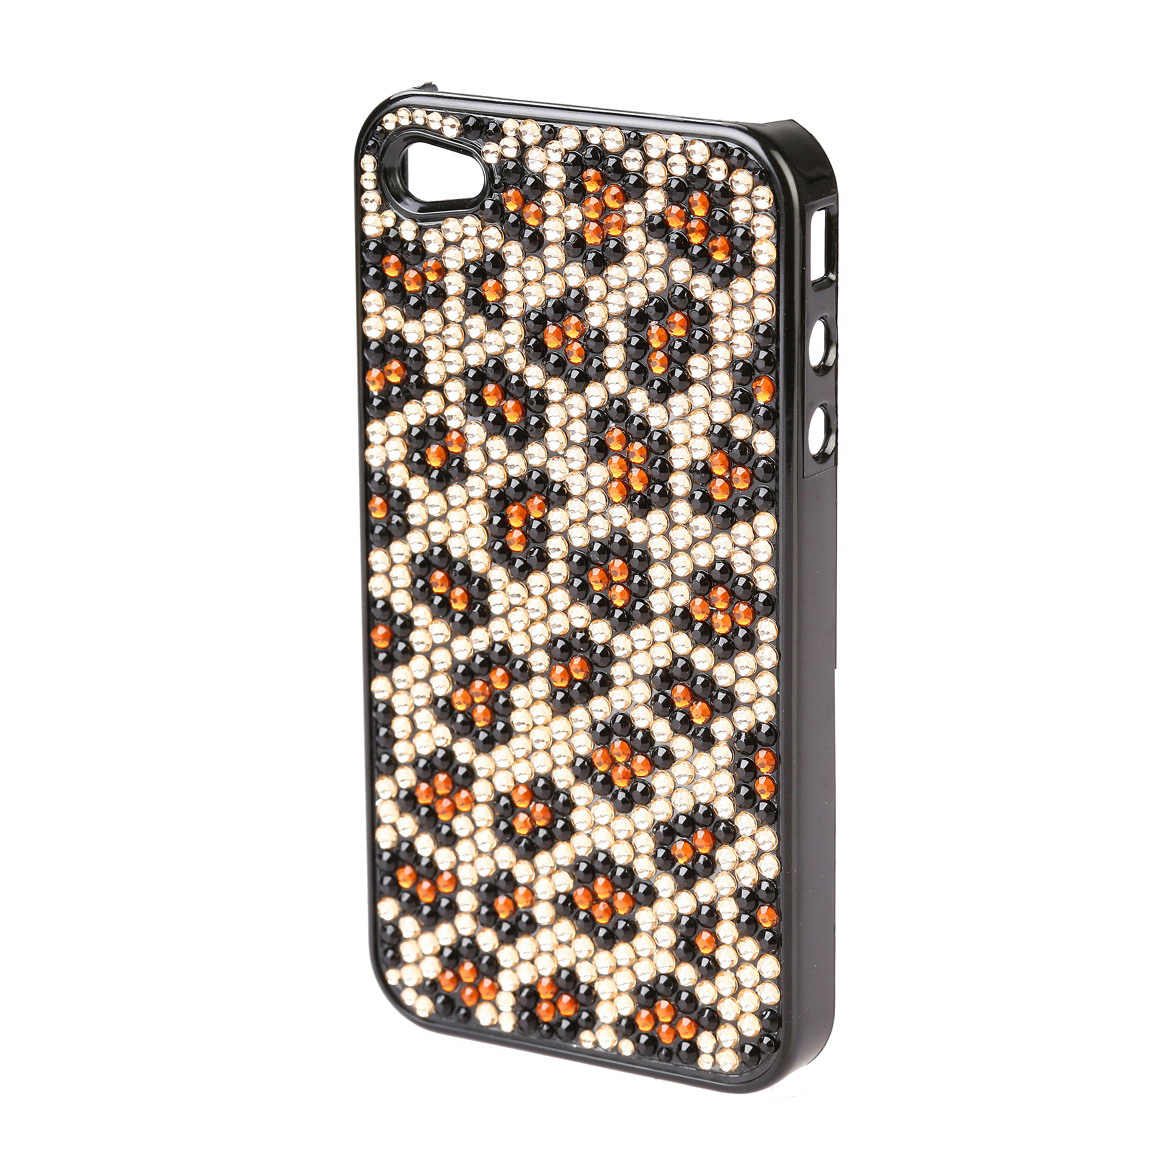 Rhinestone leopard pattern cell phone iPhone case/ cover